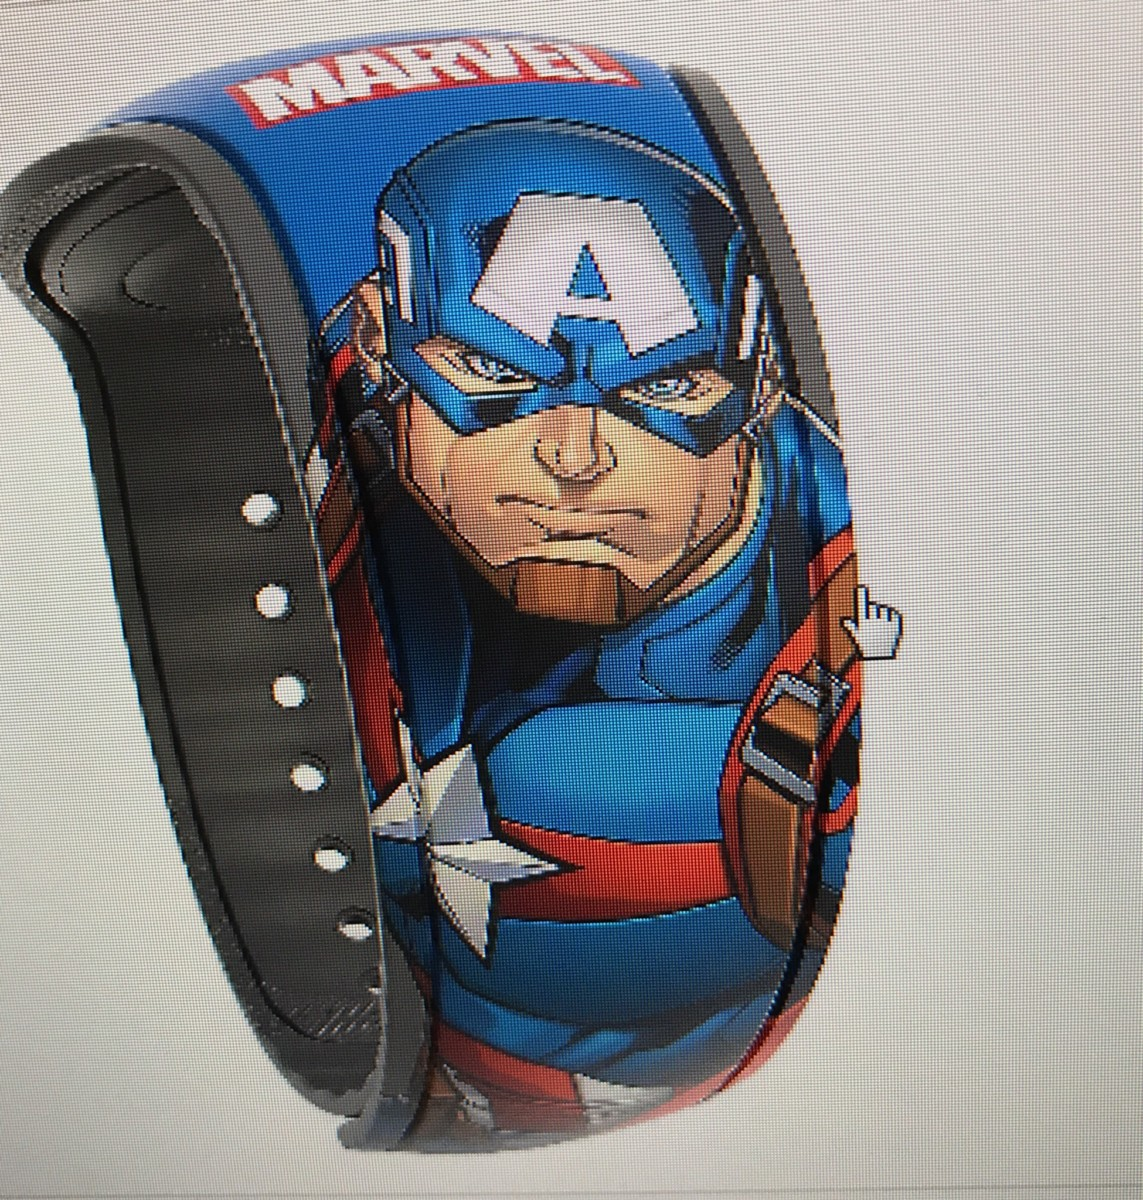 NEW! Avengers MagicBands Coming to Disney Parks September 22! 4